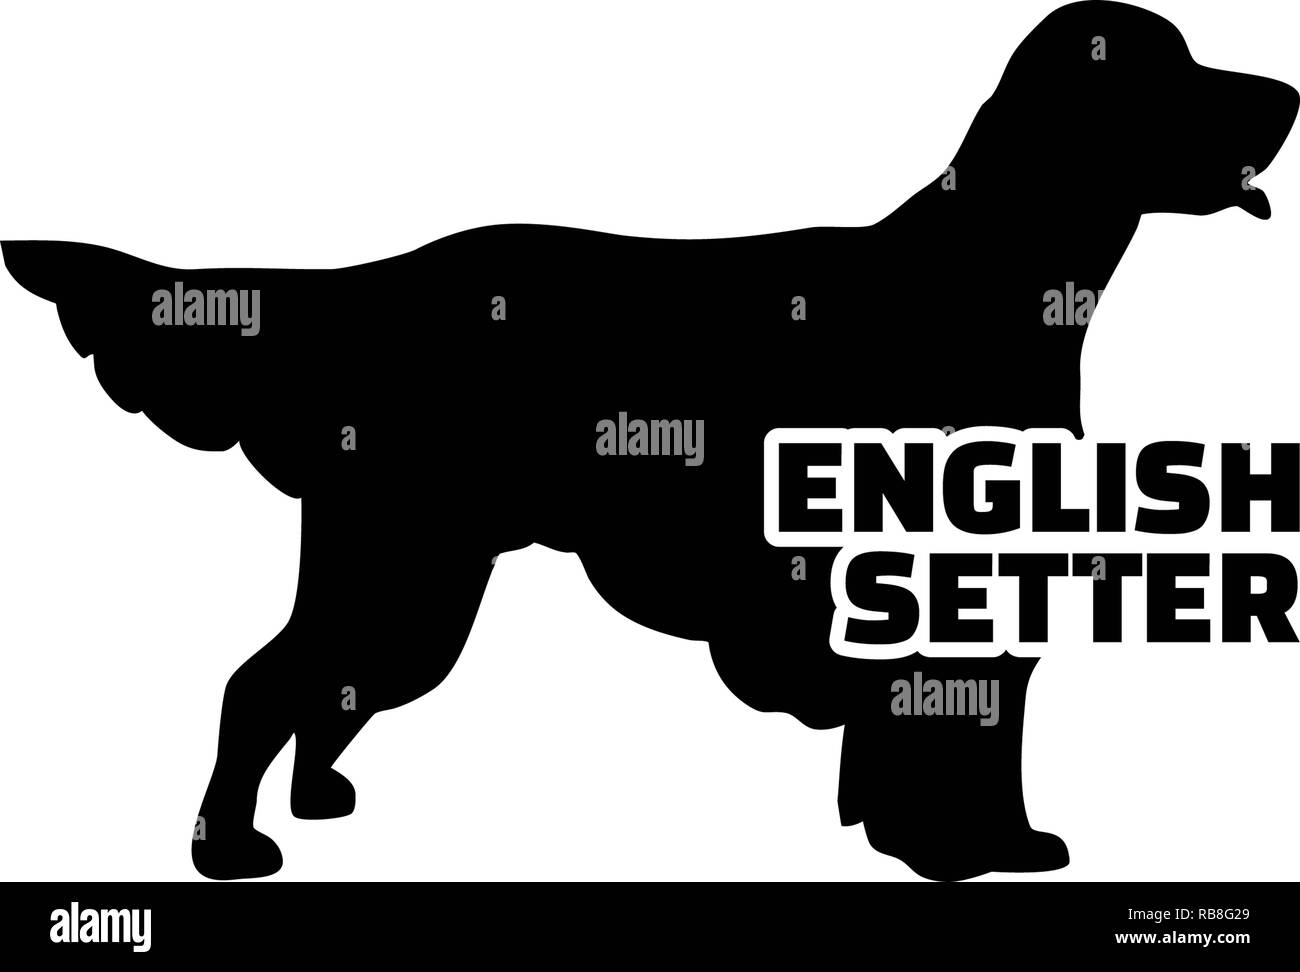 c933f5936a7c1 English Setter silhouette real with word - Stock Image